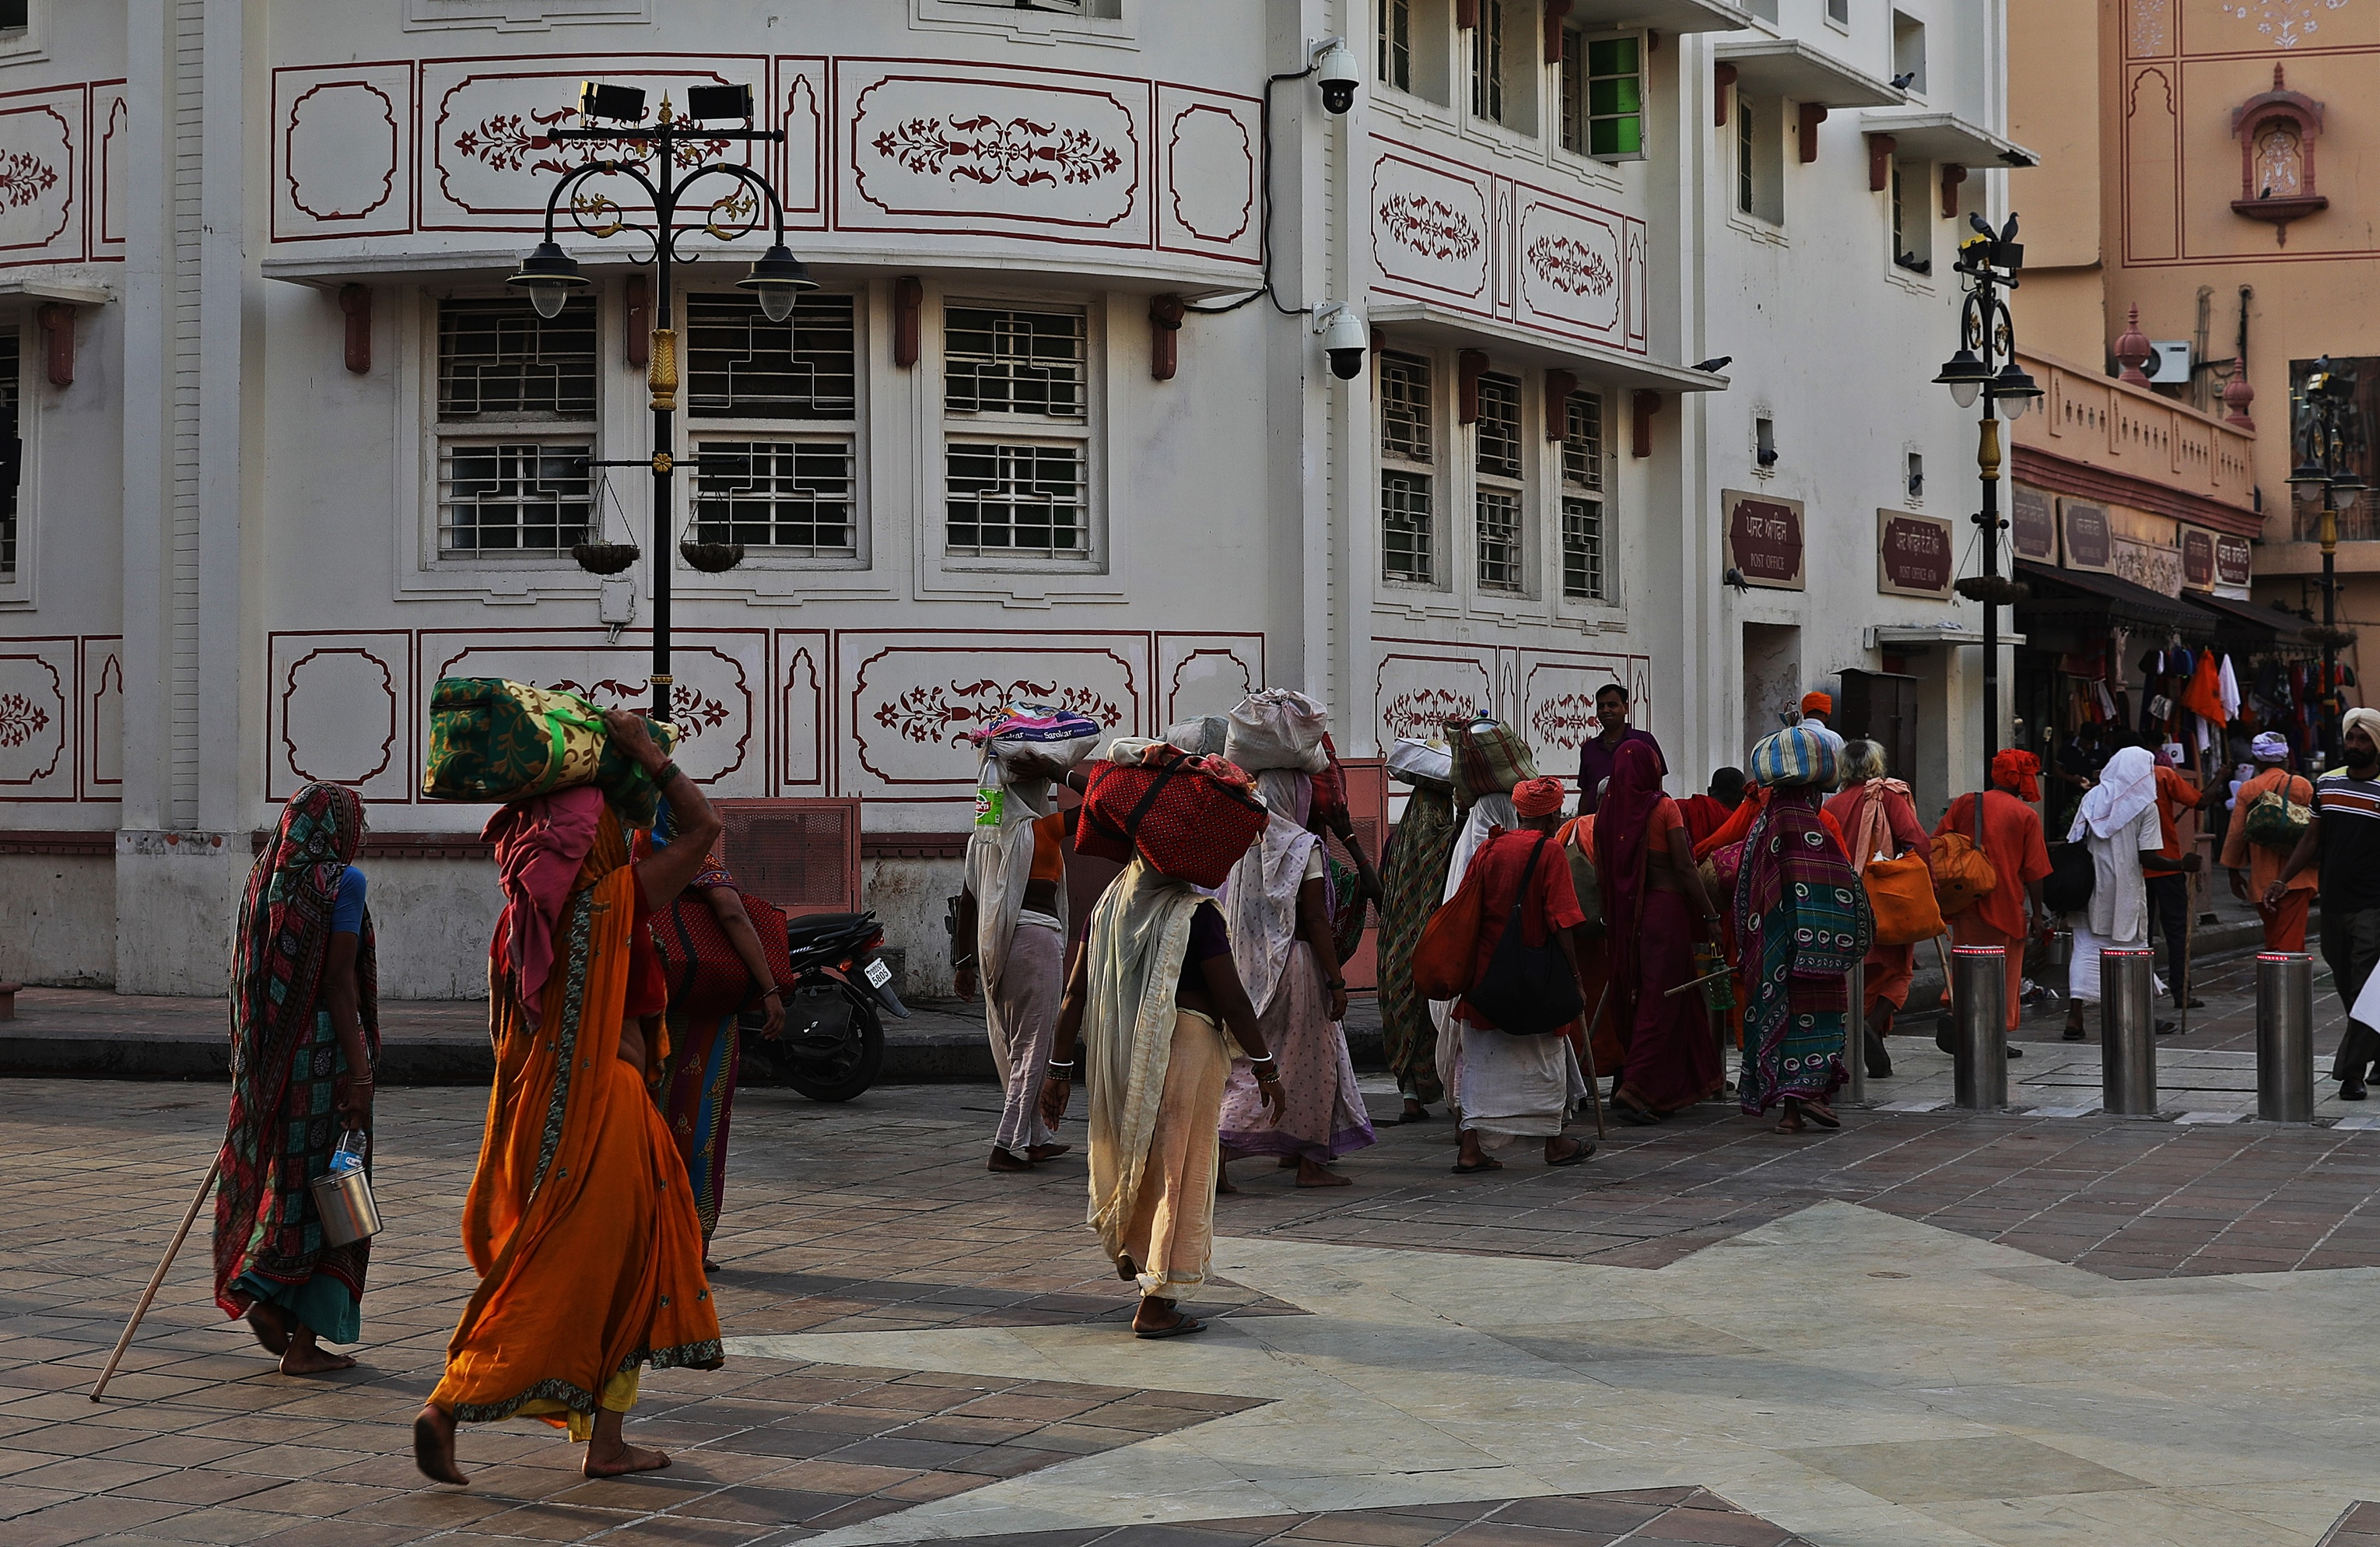 Pilgrims walking along Heritage Street to the Golden Temple